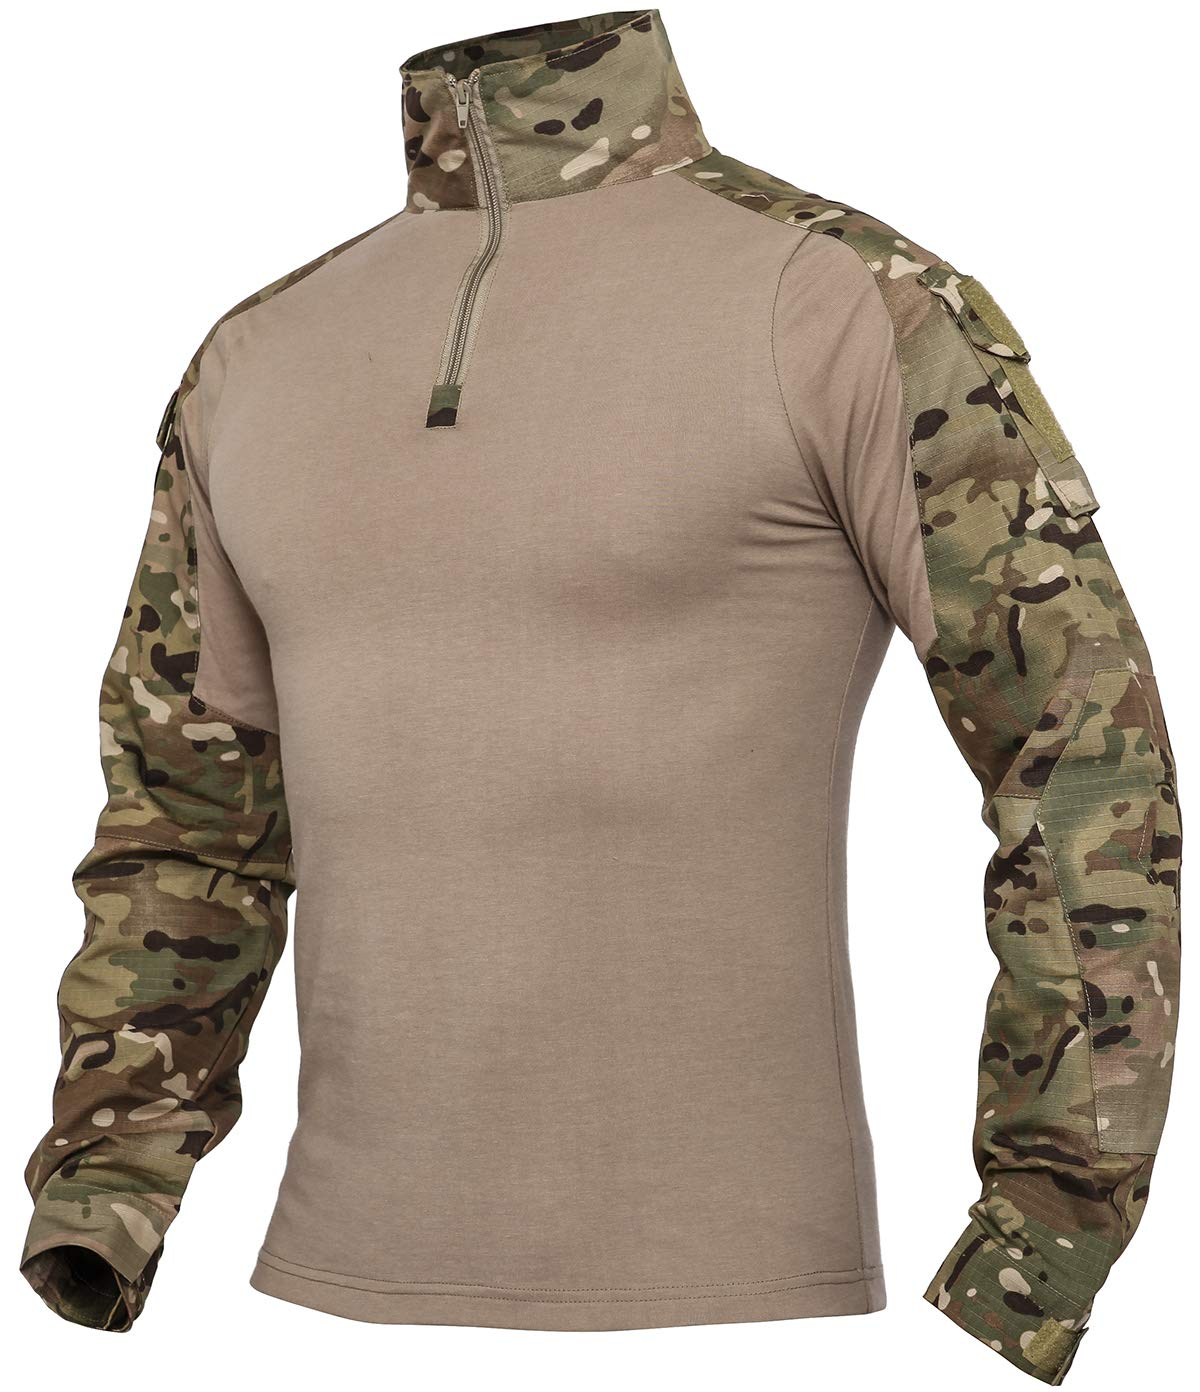 XKTTAC Tactical-Combat -Airsoft-Military-Shirt (Cp, M) by XKTTAC